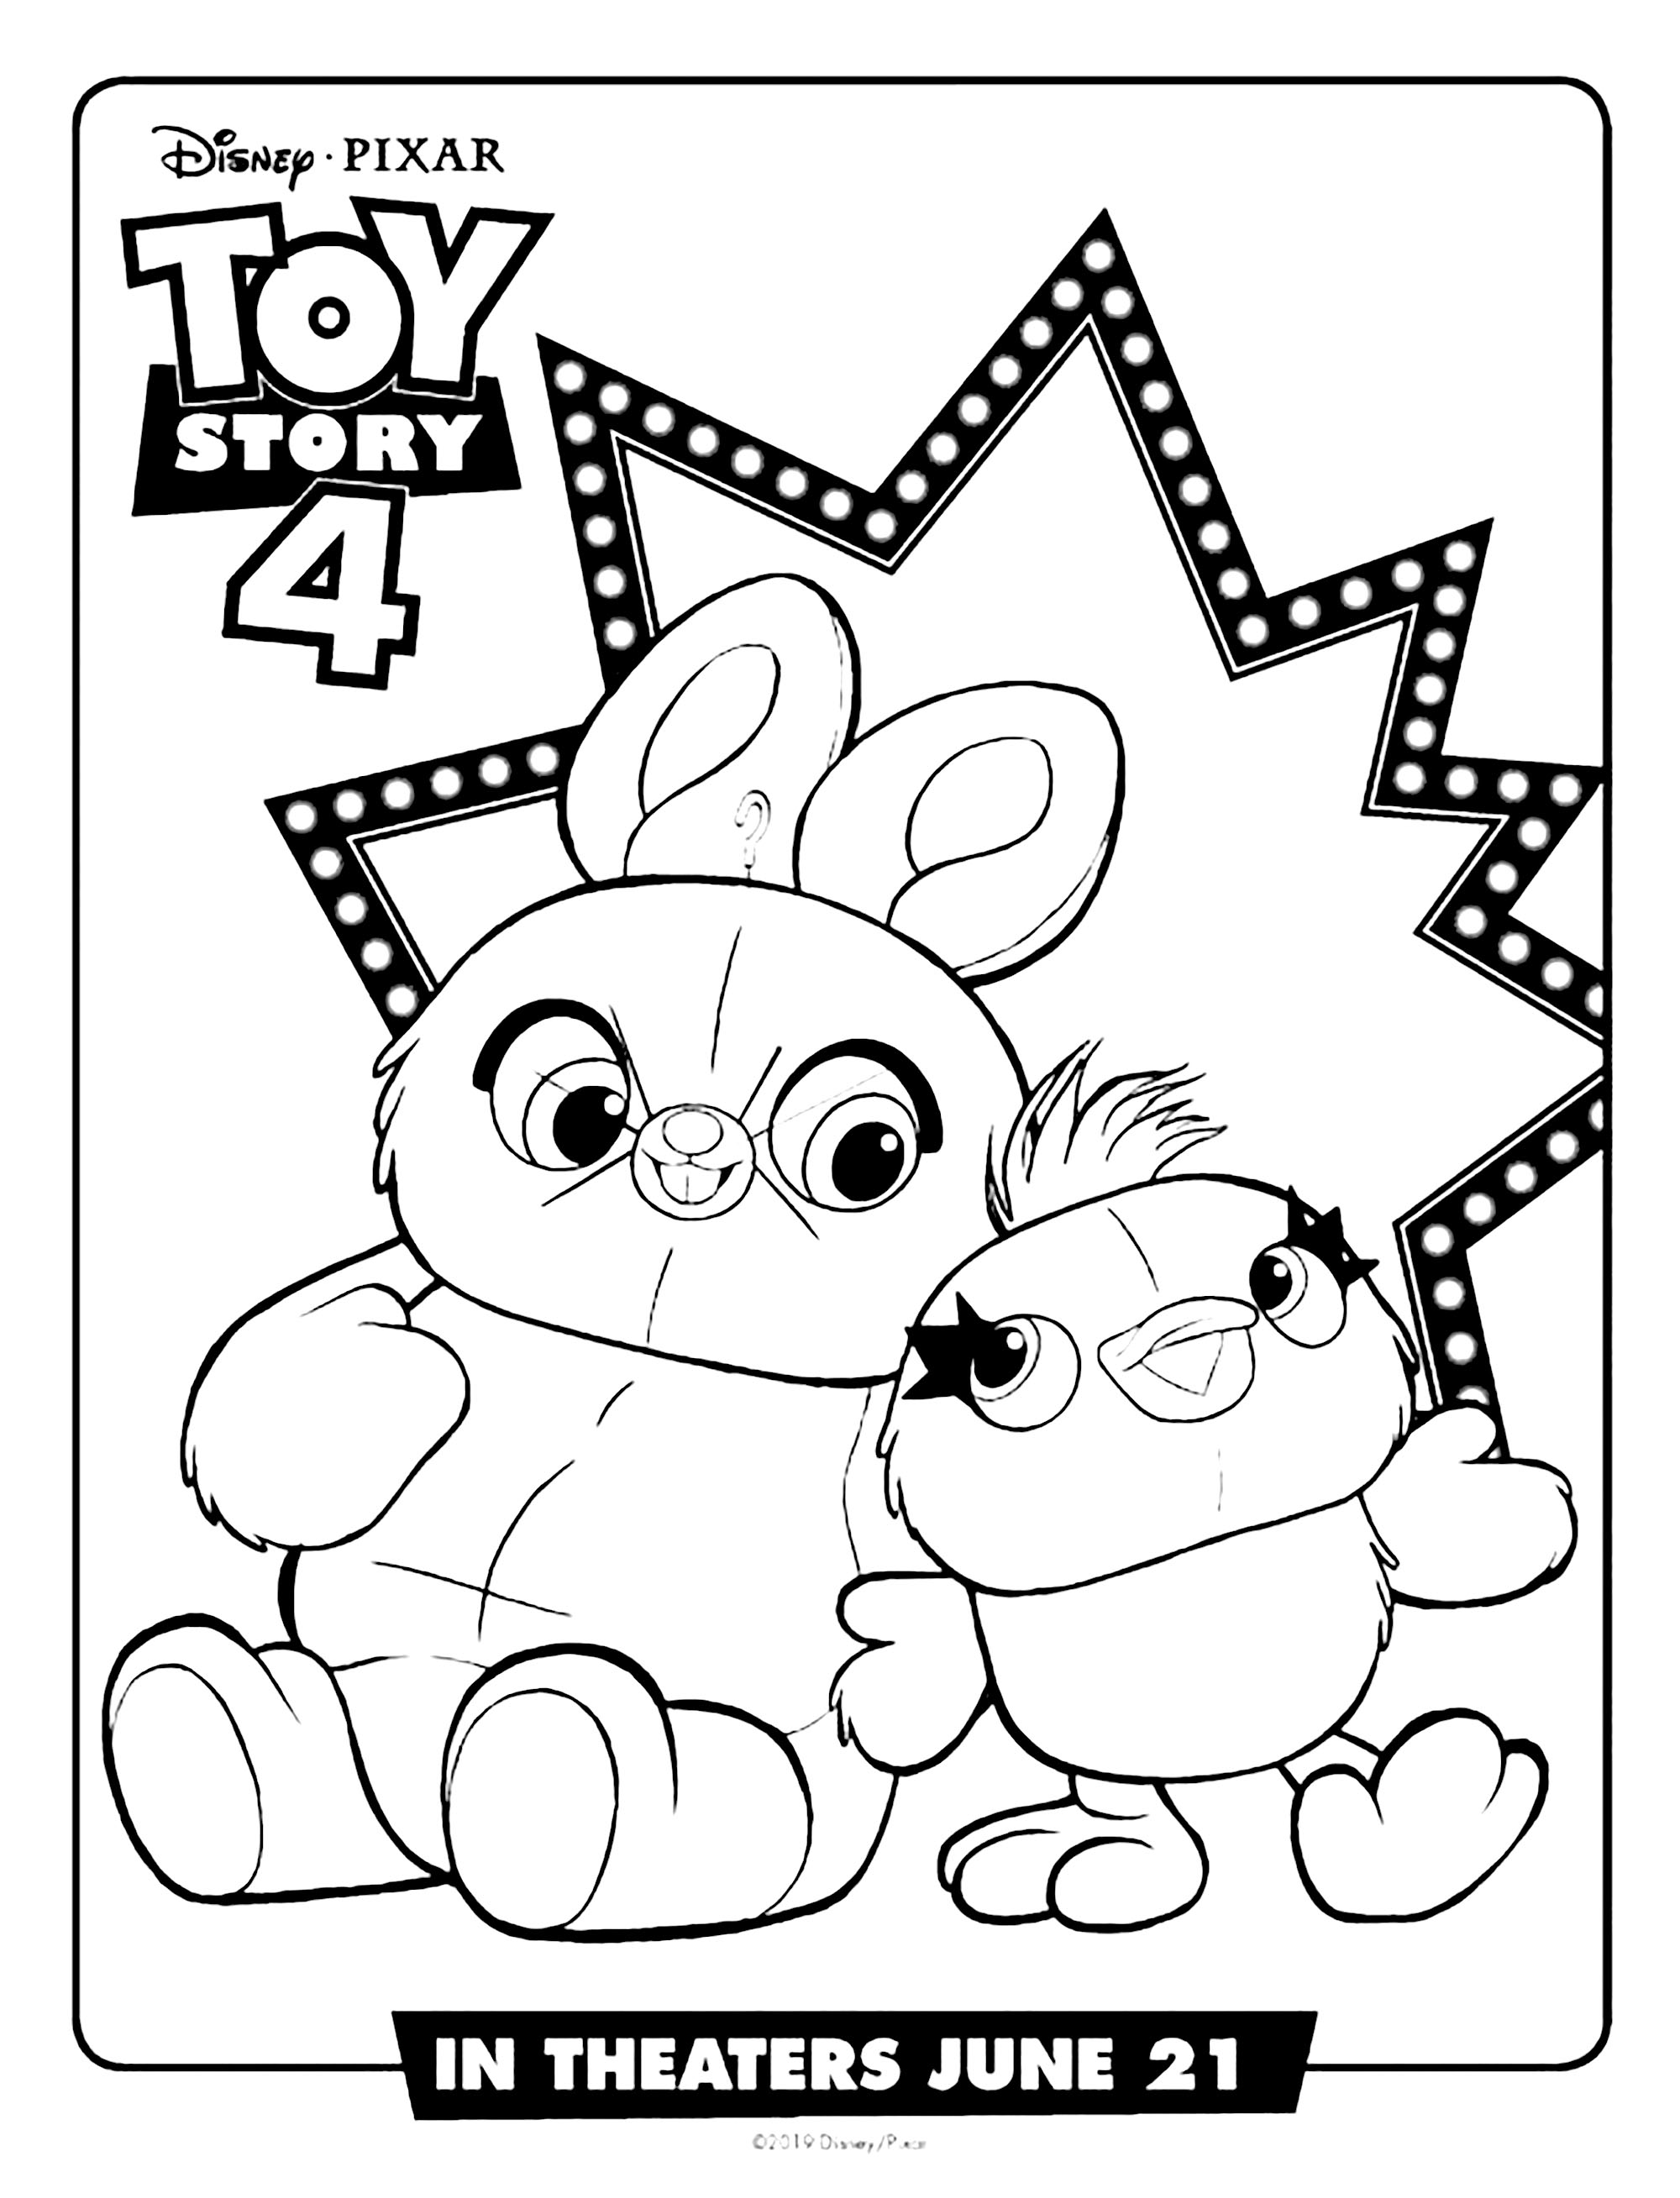 bunny toy story 4 coloring pages قصة لعبة تلوين 4 صفحات الأفلام والبرامج التلفزيونية coloring bunny story toy 4 pages